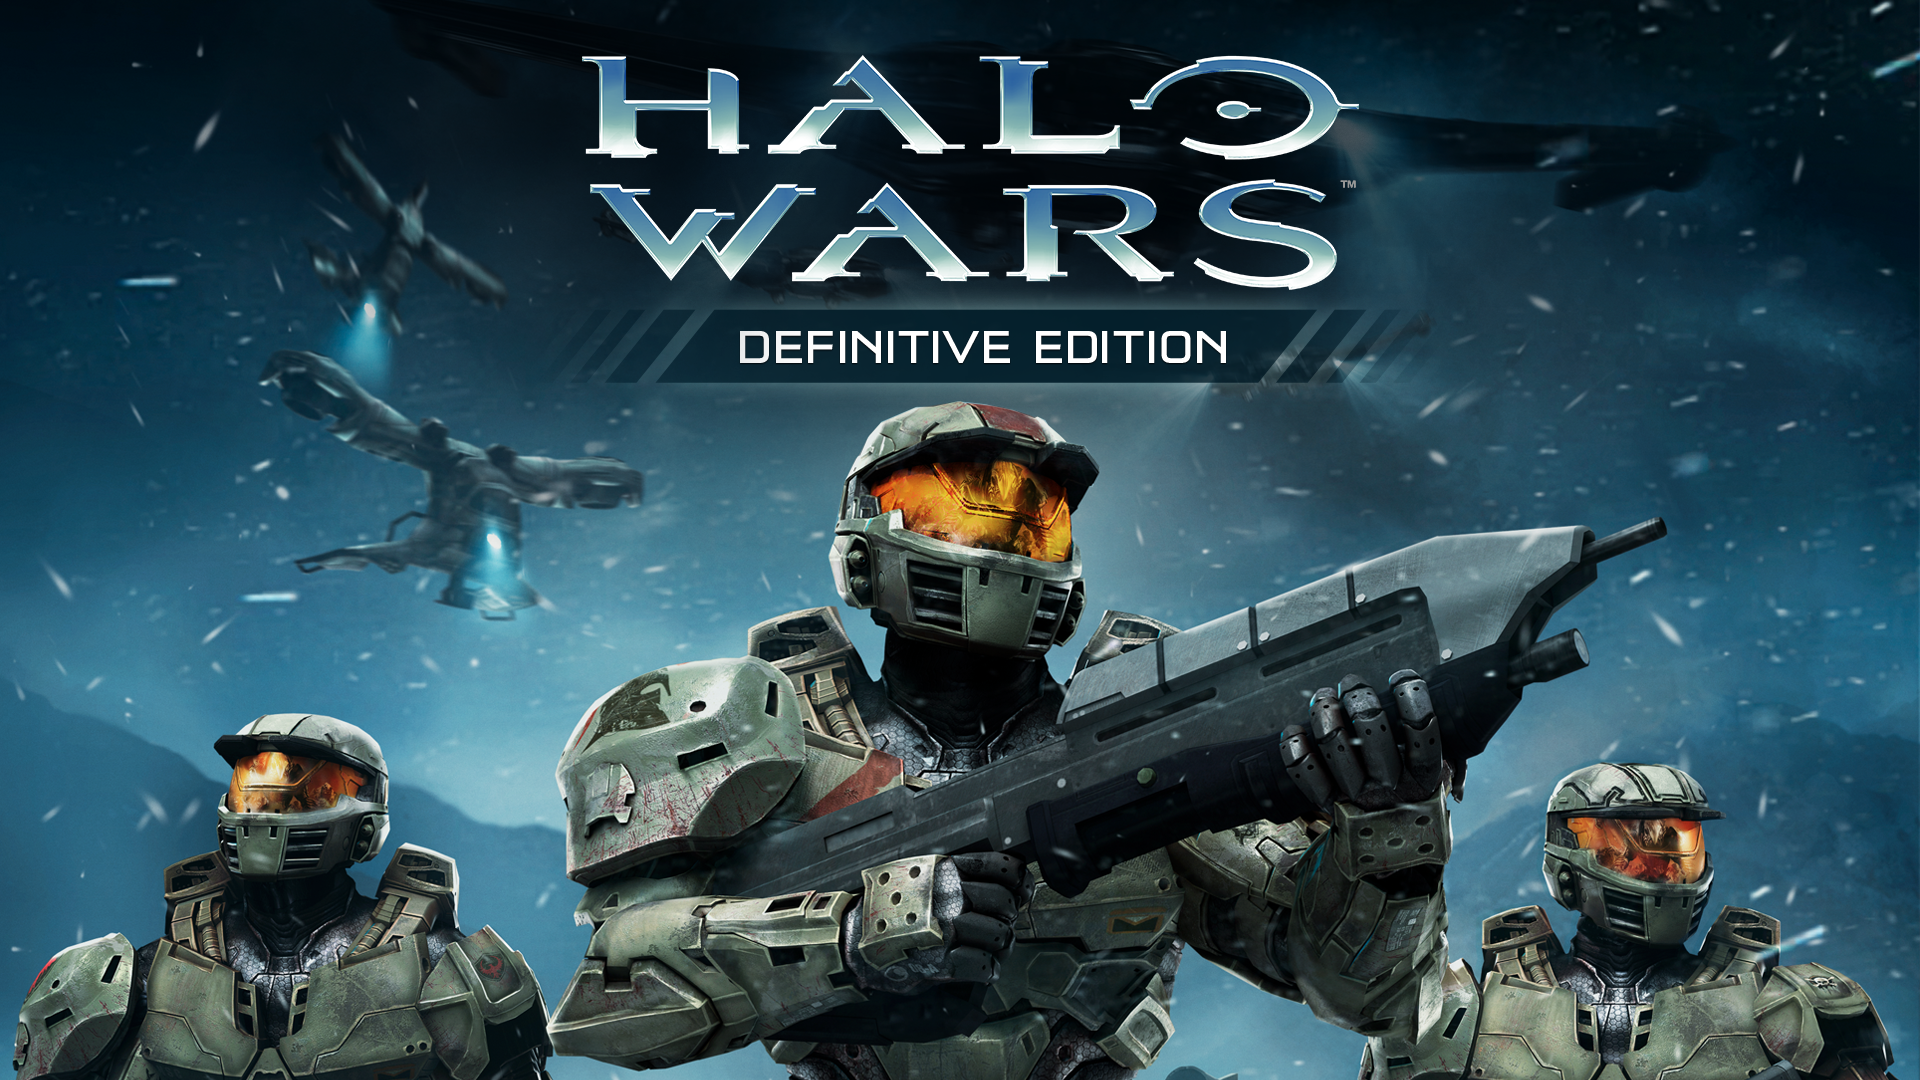 La remasterización Halo Wars: Definitive Edition llegará el 20 de abril a Xbox One, Windows Store y Steam